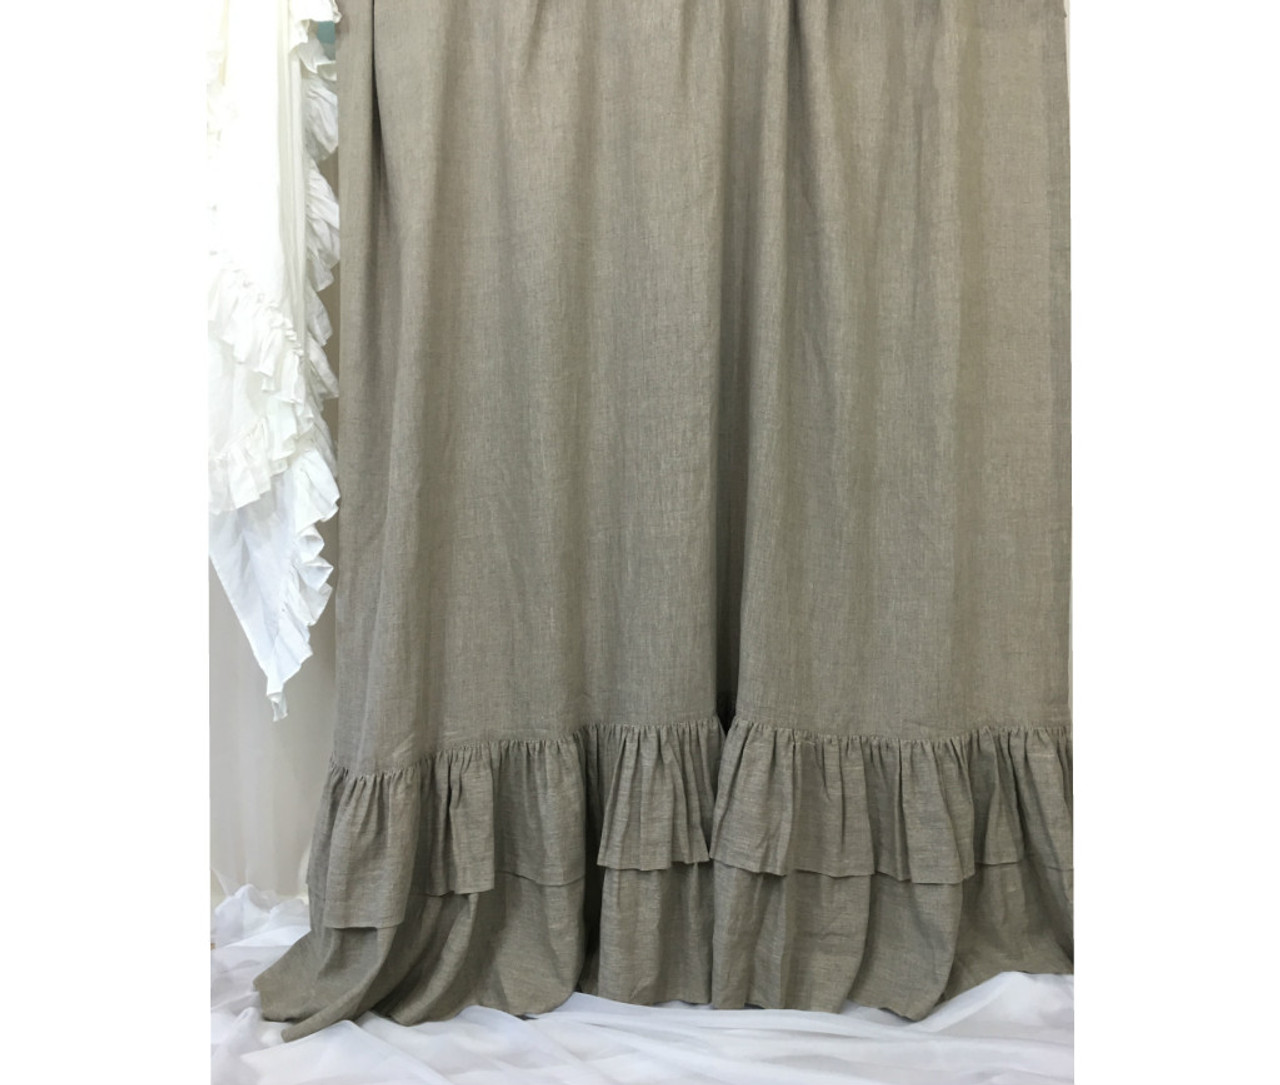 Dark Linen Shower Curtains With Double Layers Of Mermaid Long Ruffles